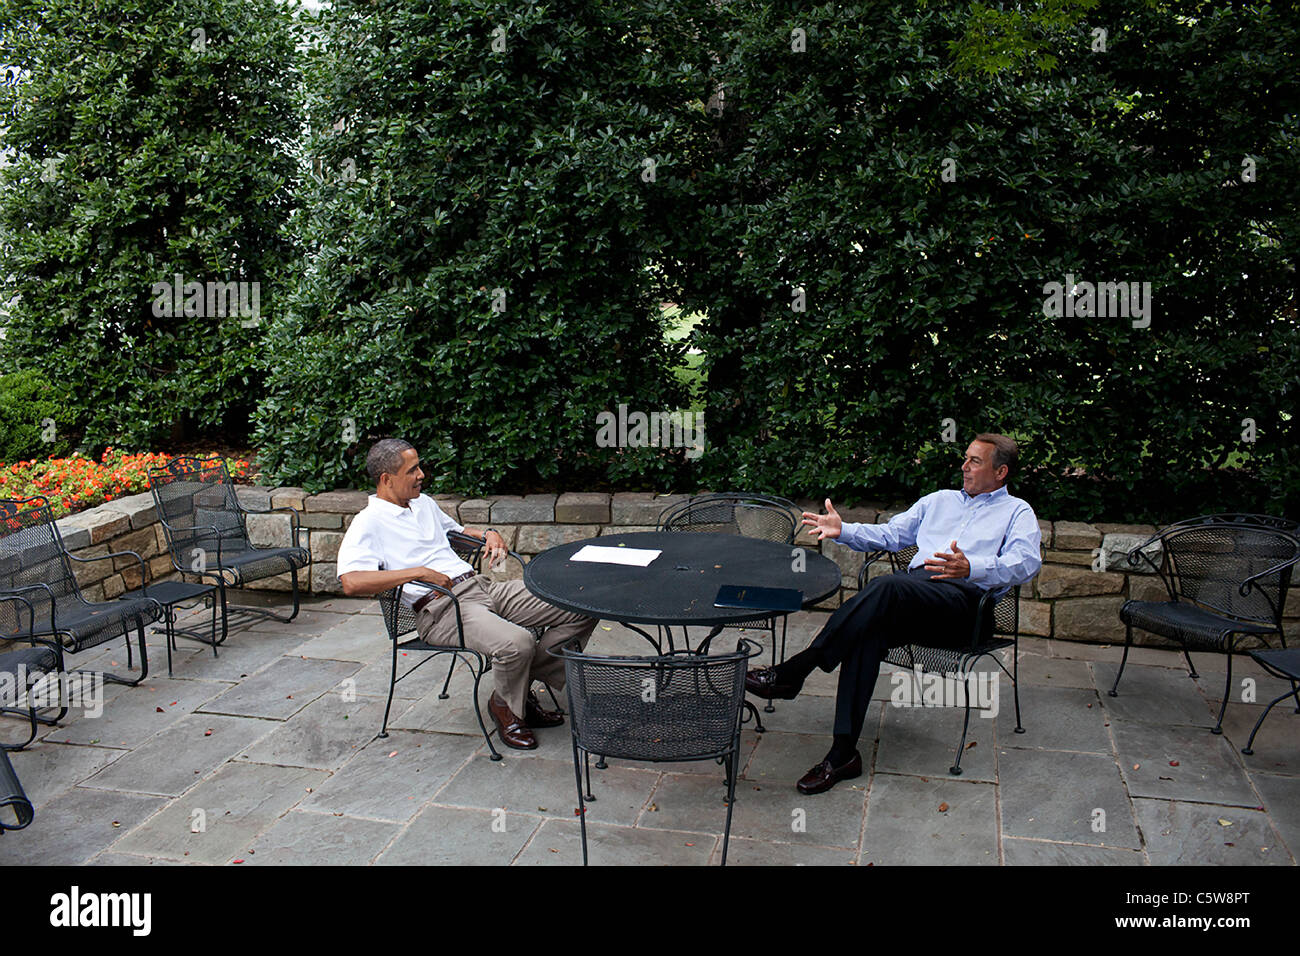 President Barack Obama meets with Speaker of the House John Boehner on the patio near the Oval Office, Sunday, July - Stock Image